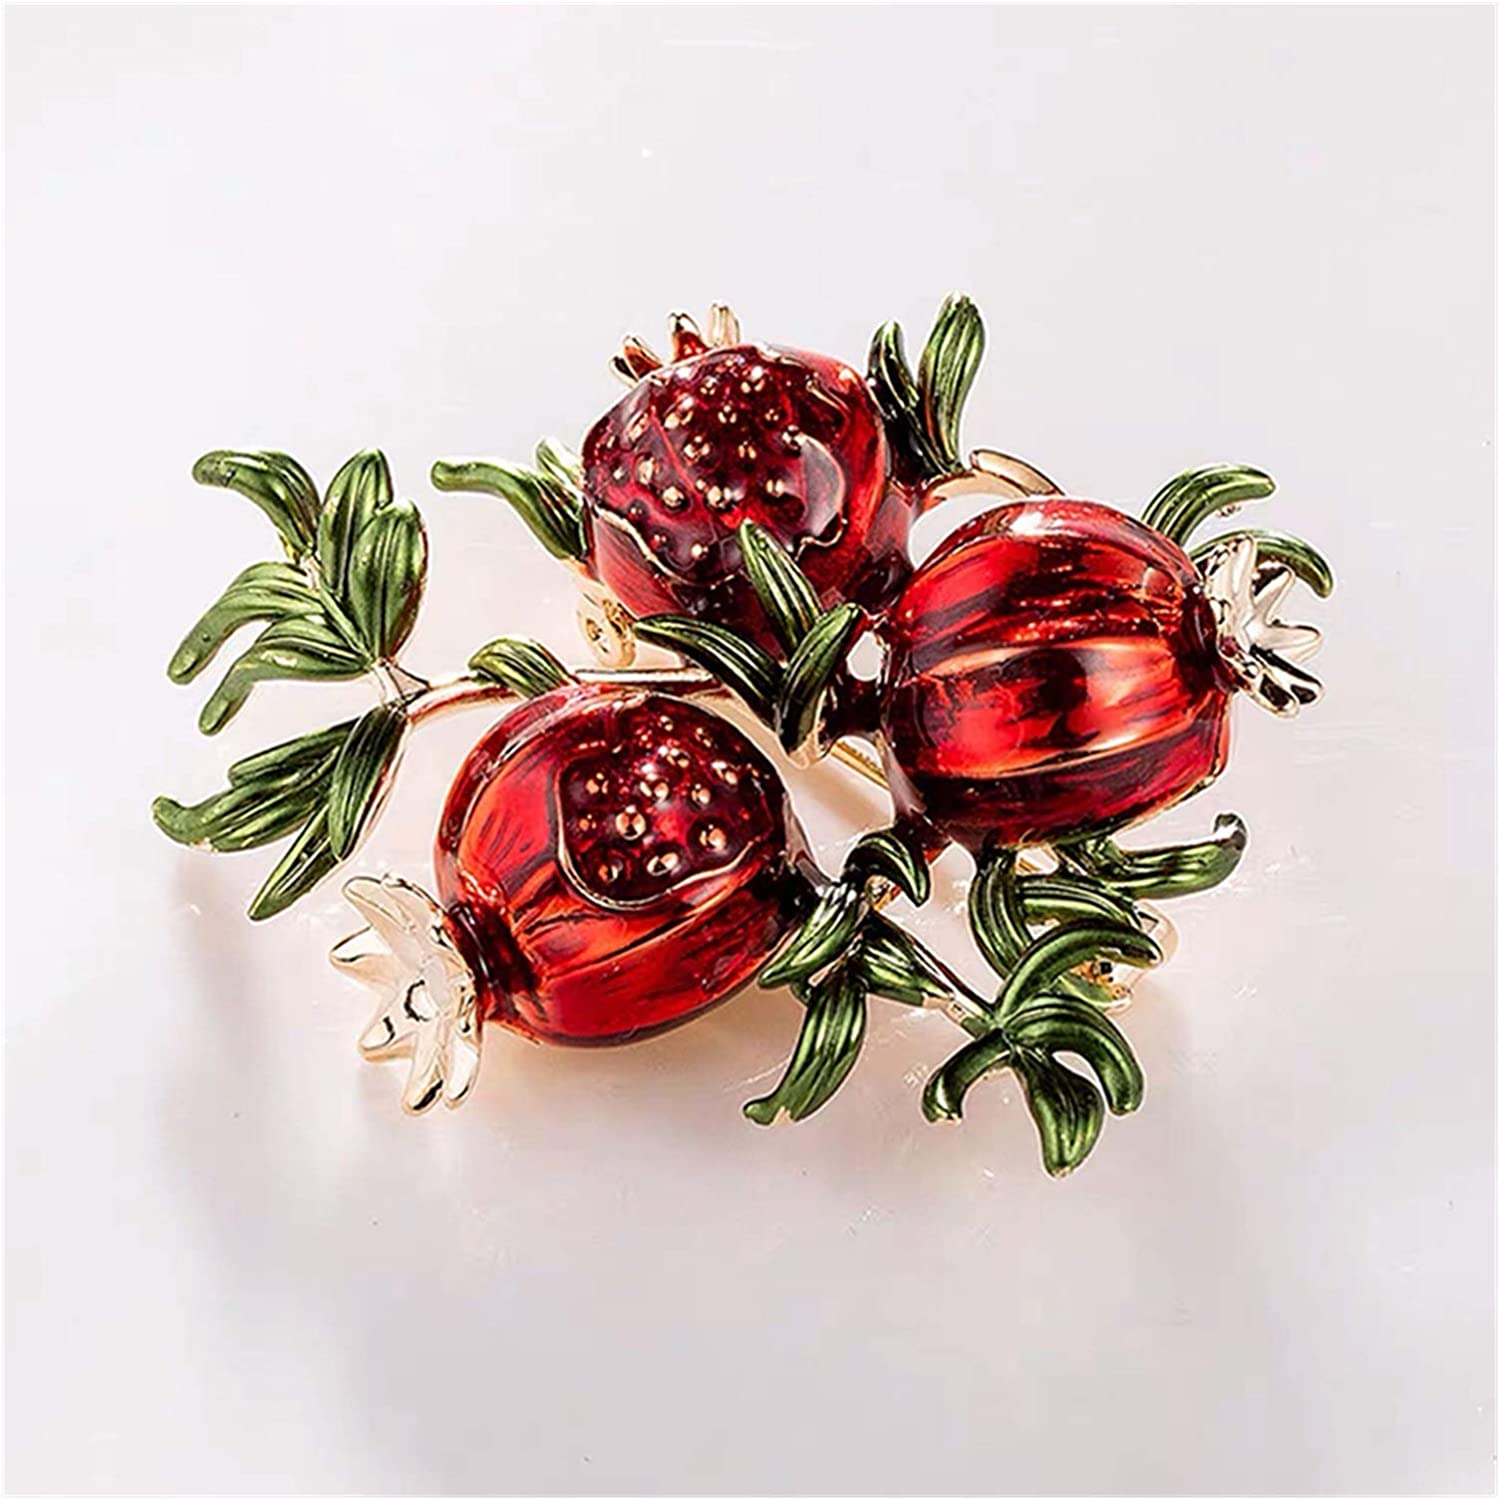 Jiaye Brooch Red Enamel Pomegranate Brooches for Women Alloy Fruits Casual Weddings Brooch Pins Gifts